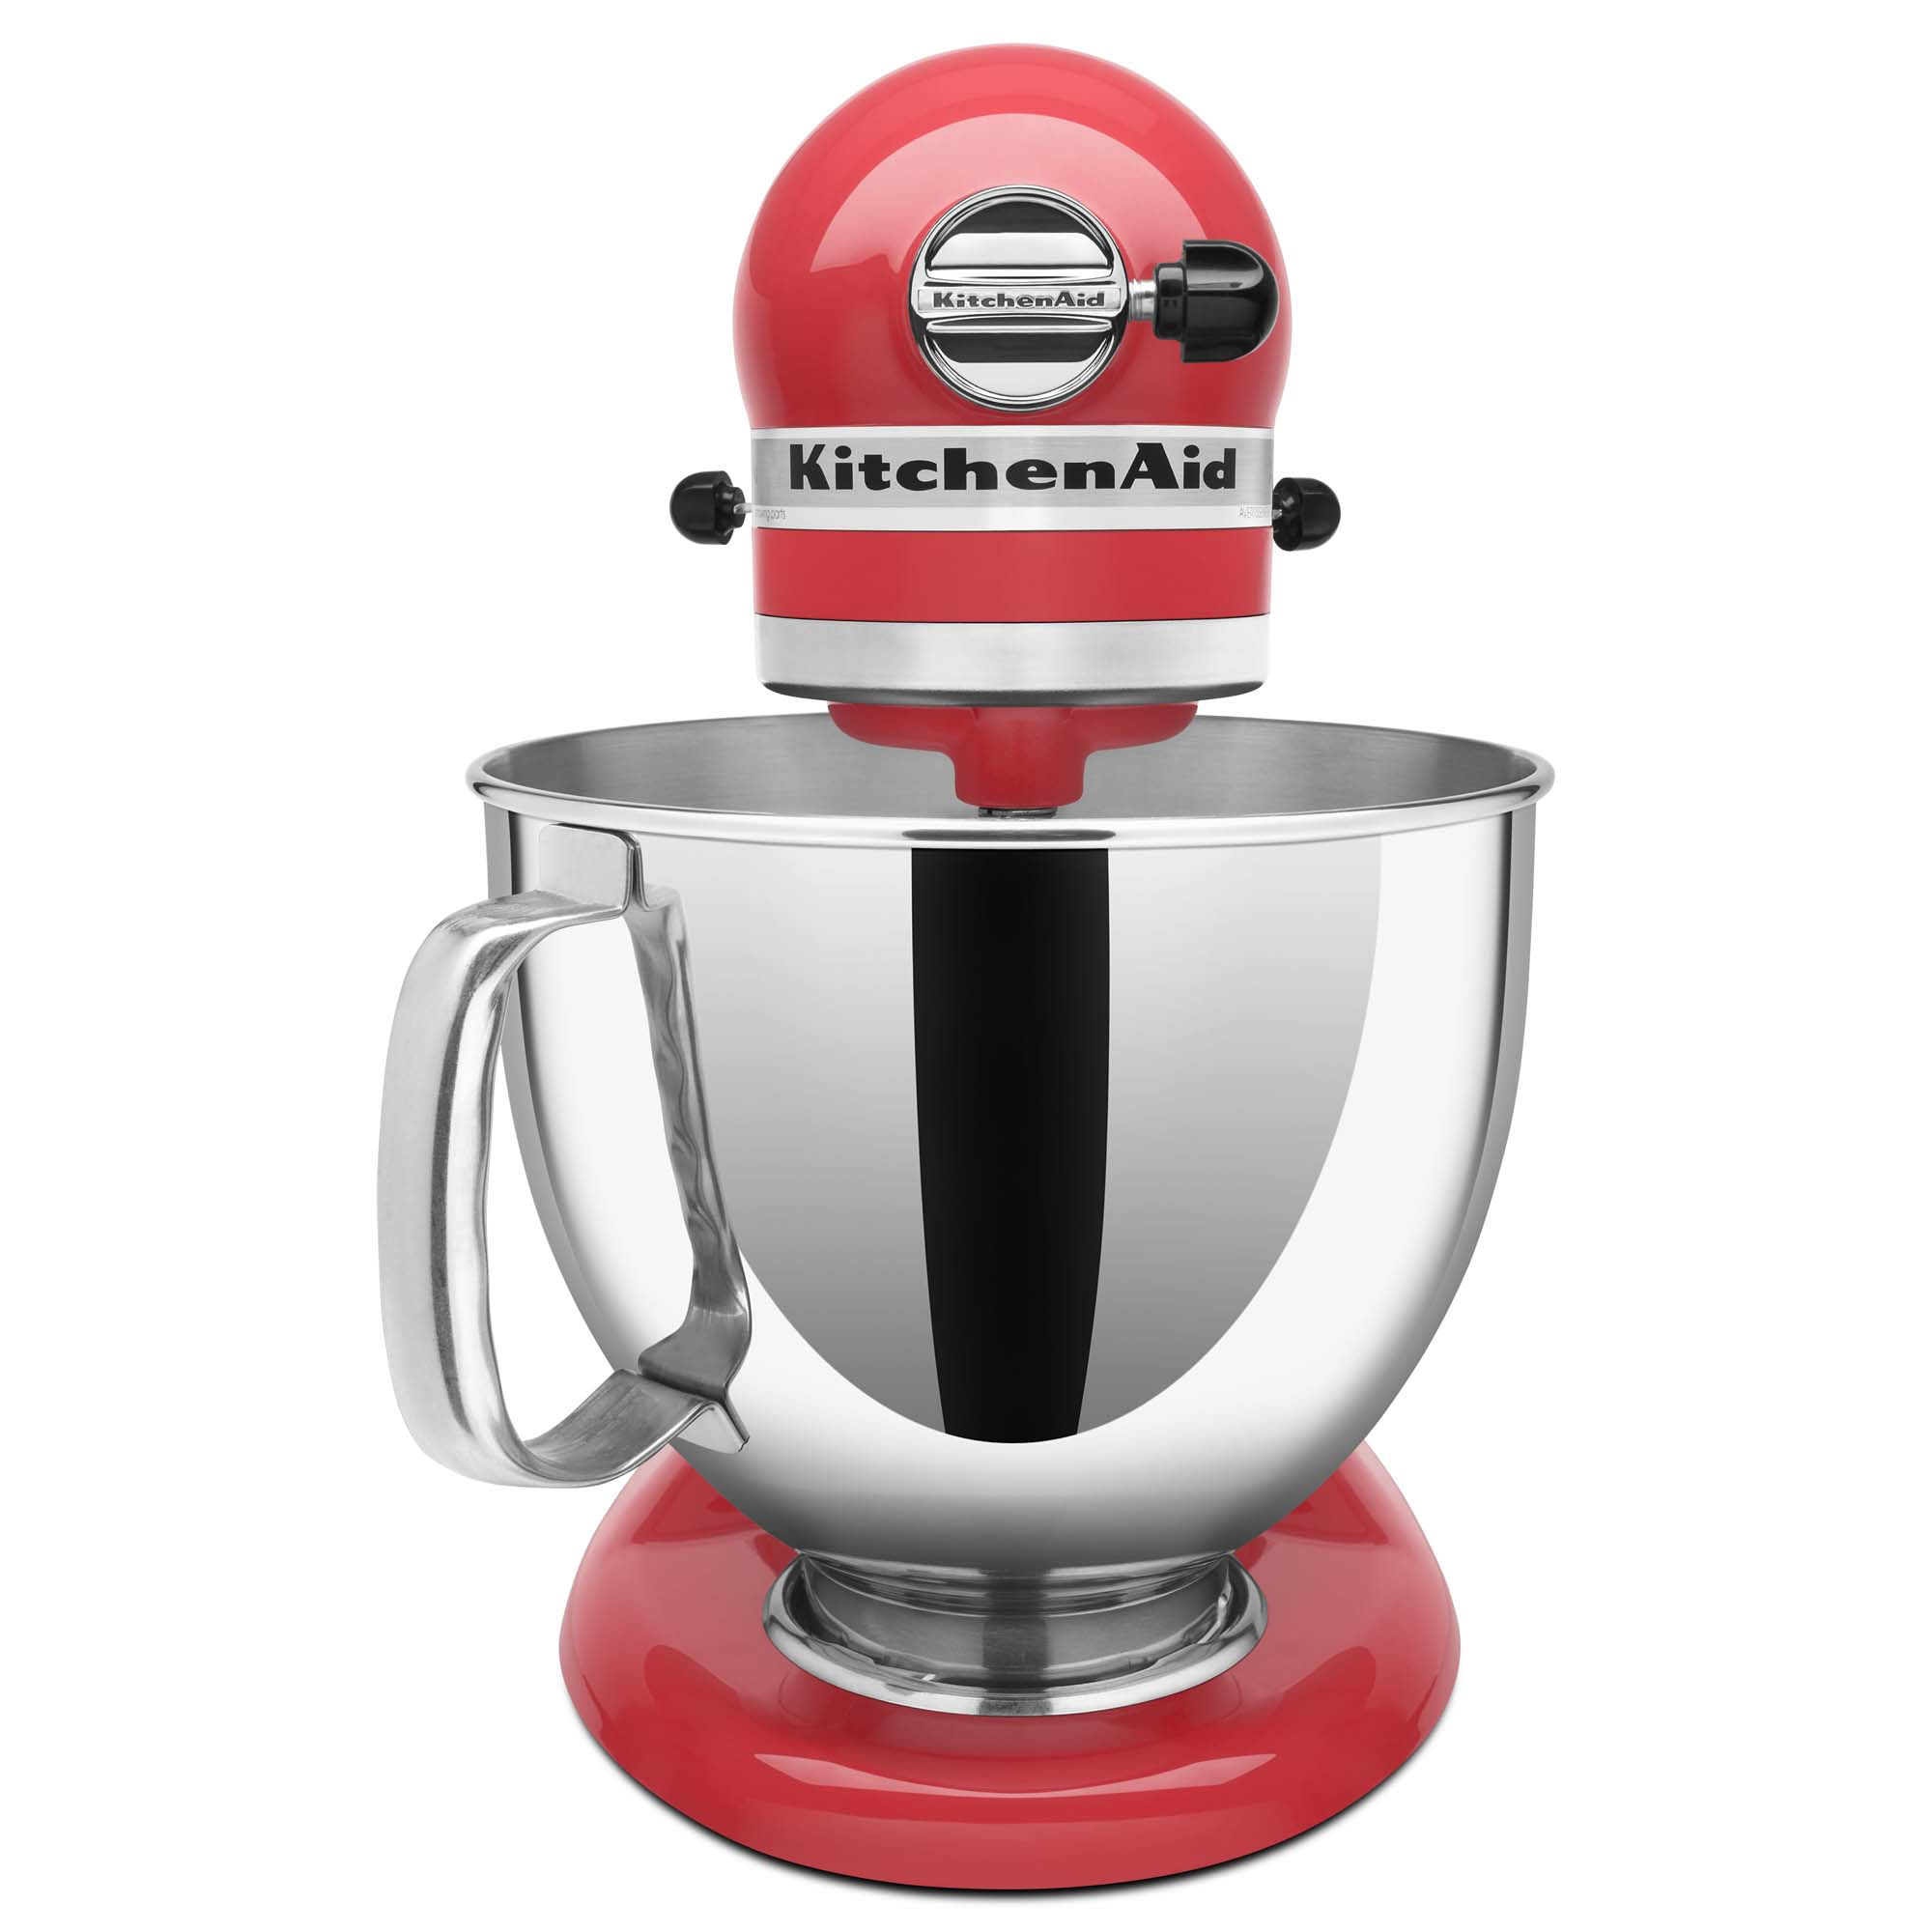 KitchenAid-Refurbished-Artisan-Series-5-Quart-Tilt-Head-Stand-Mixer-RRK150 thumbnail 89